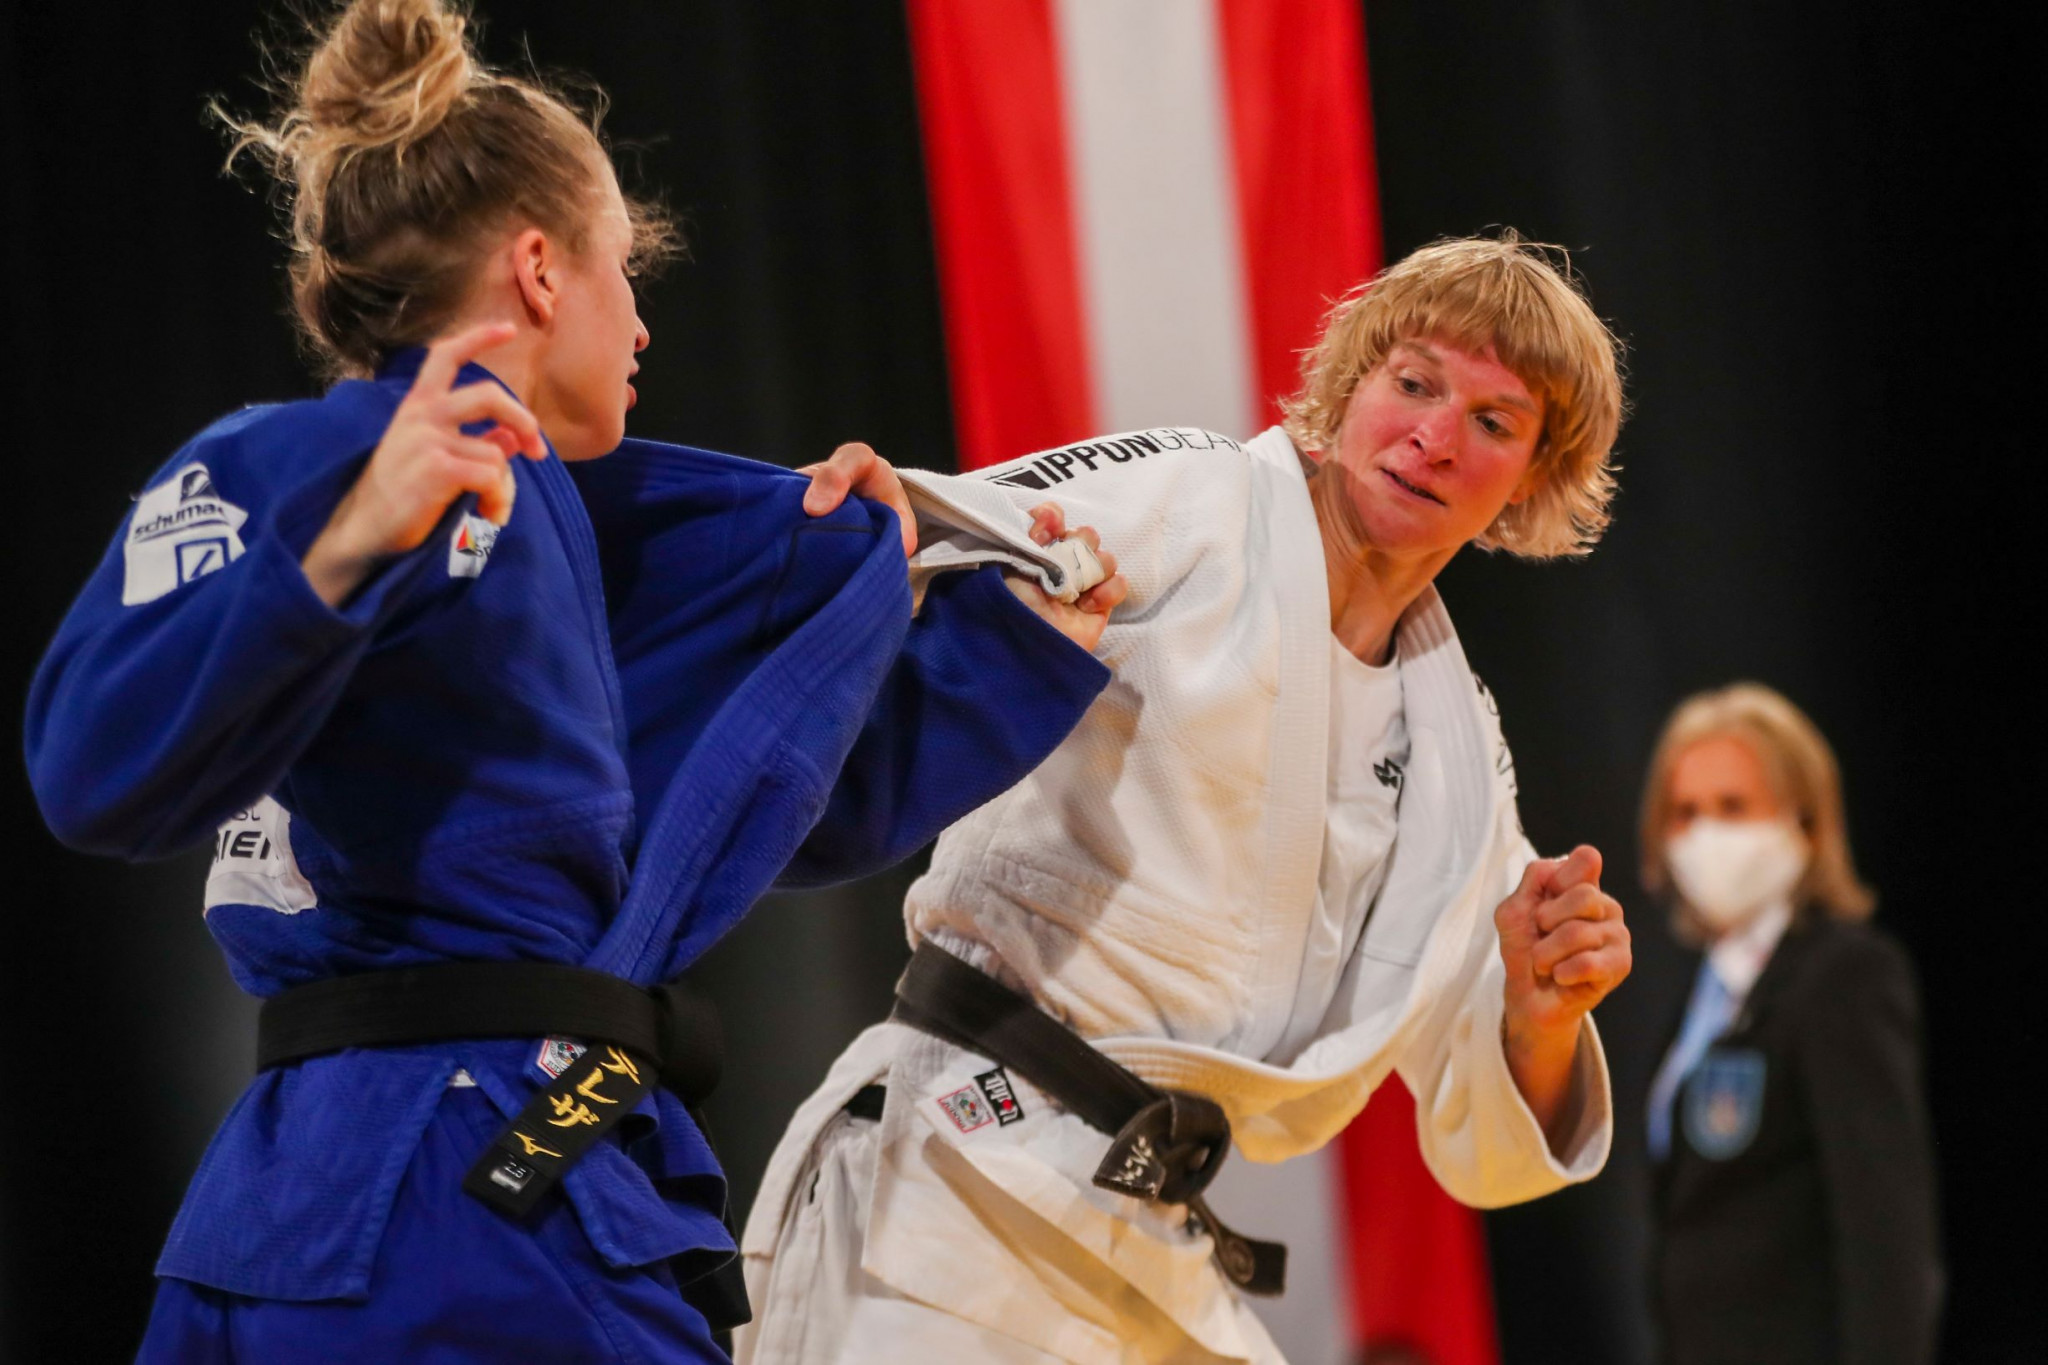 Germany narrowly defeat Austria in team judo competition